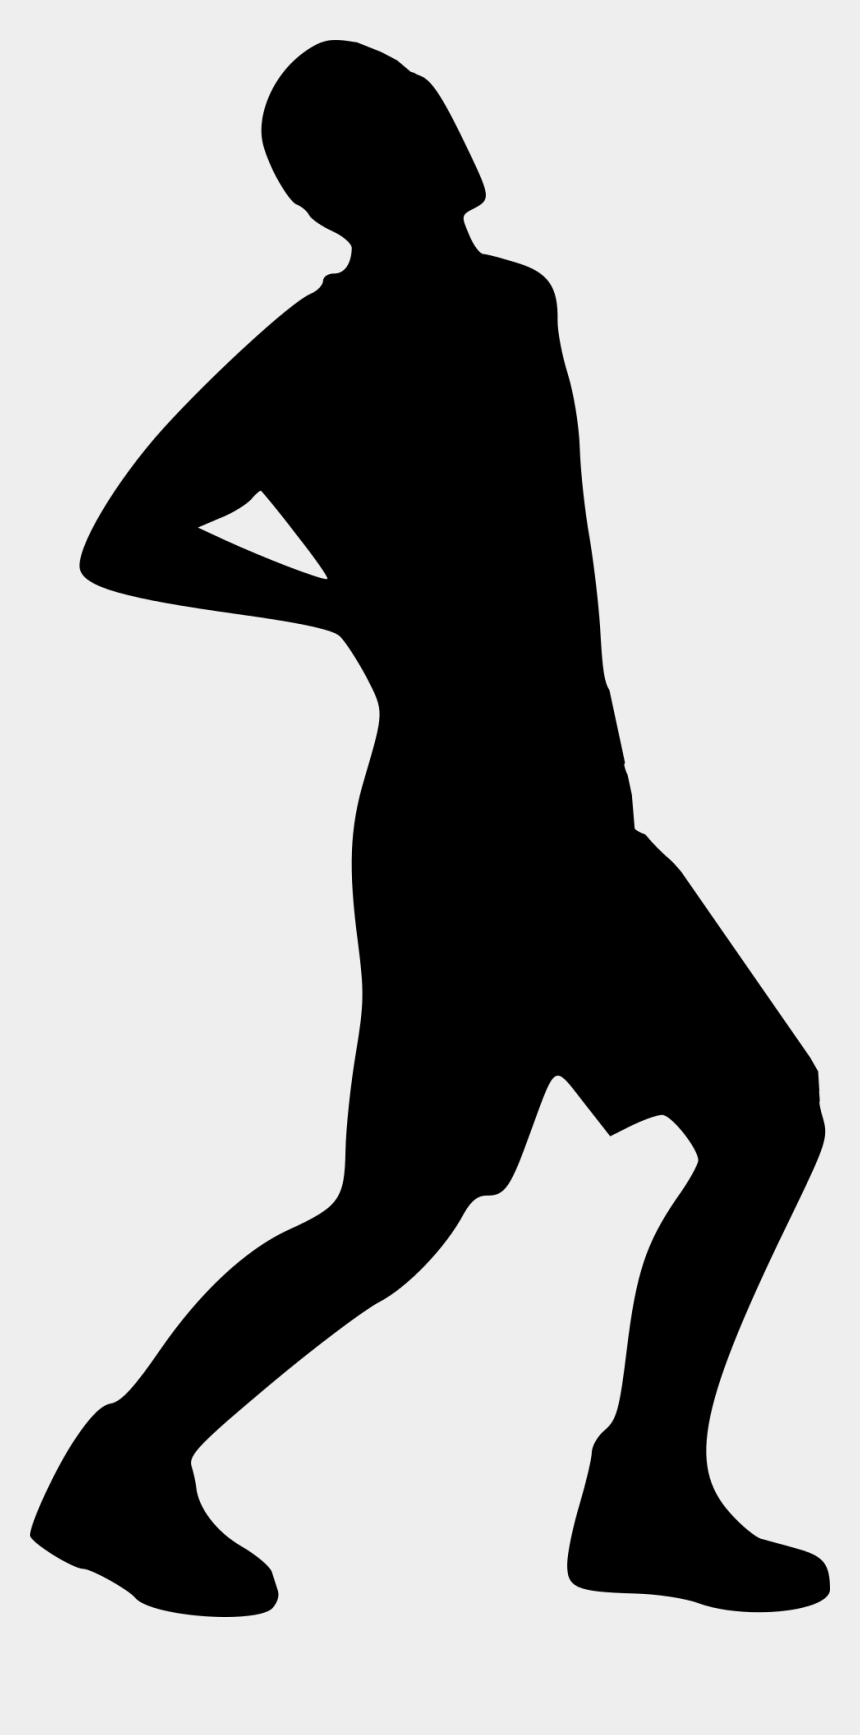 lower back pain clipart, Cartoons - Back Pain Silhouette